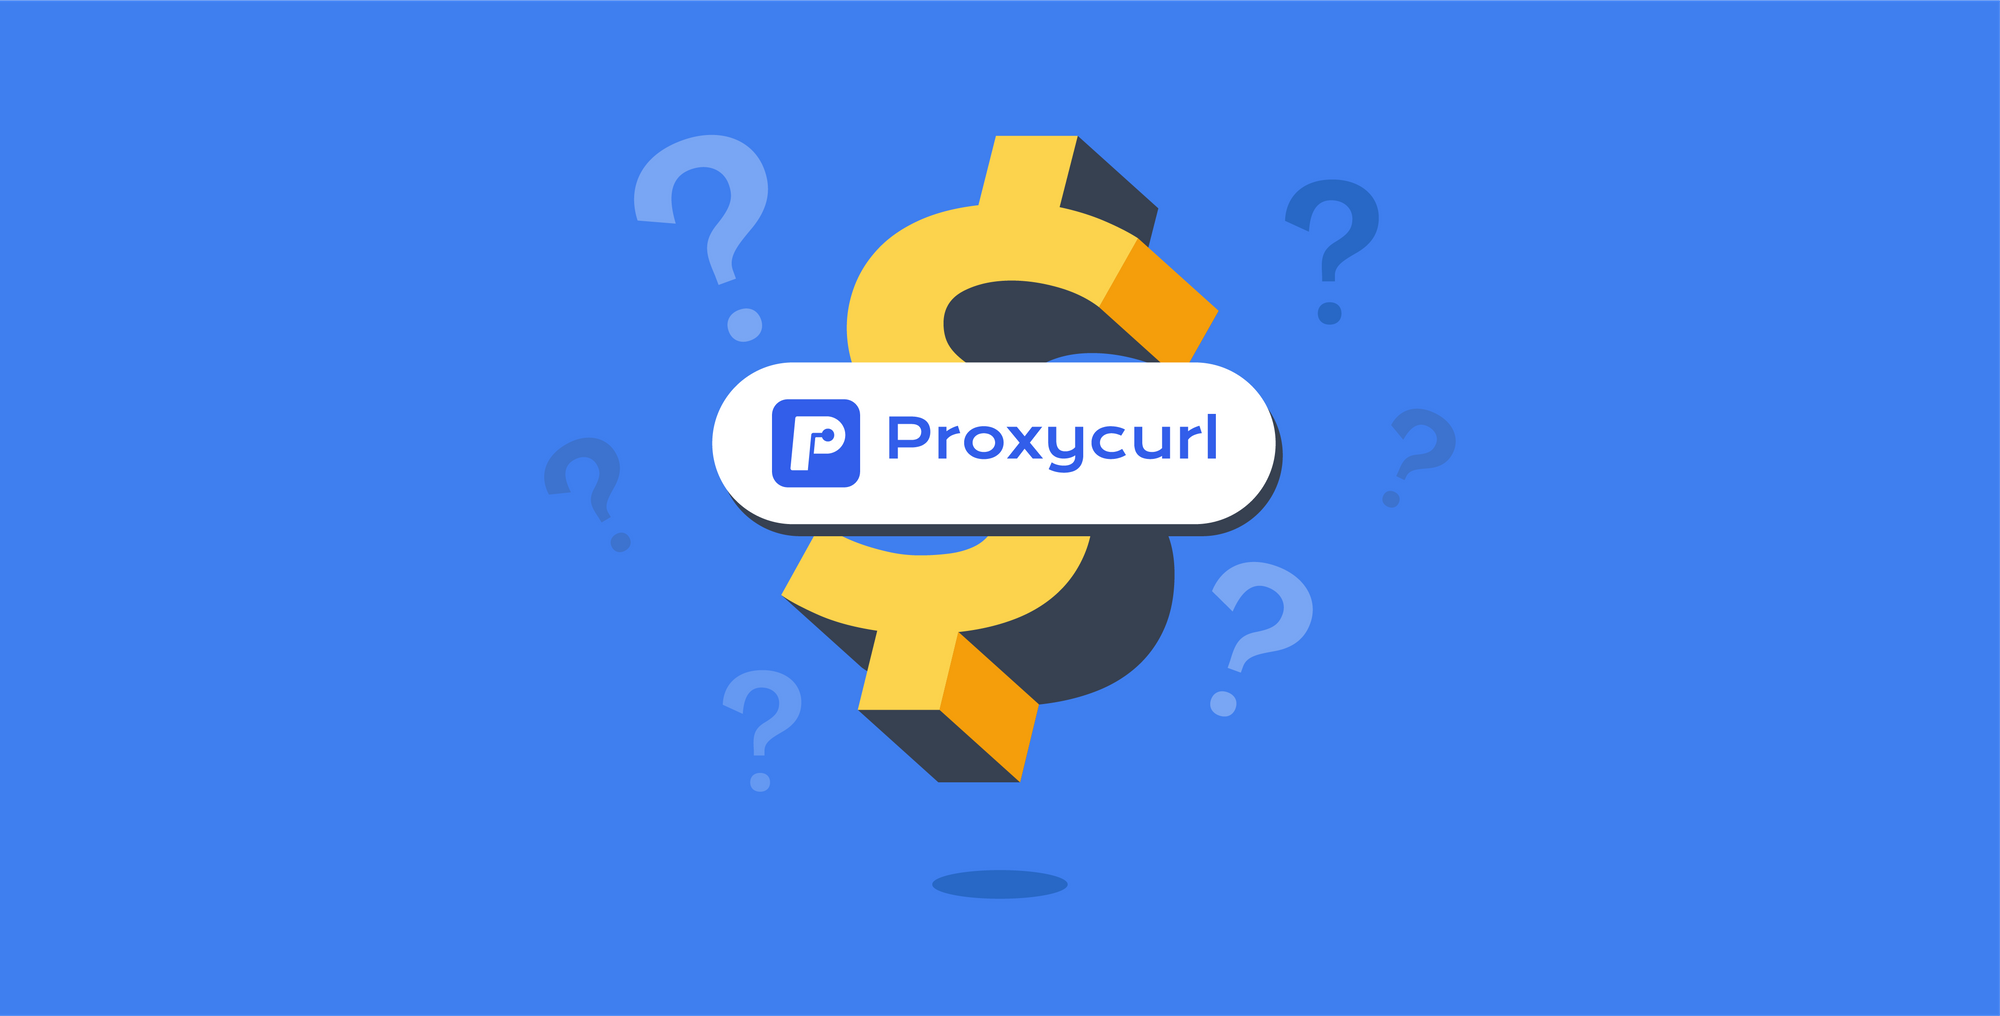 How much does Proxycurl cost? How do I get on an Enterprise plan? Do you have volume pricing?